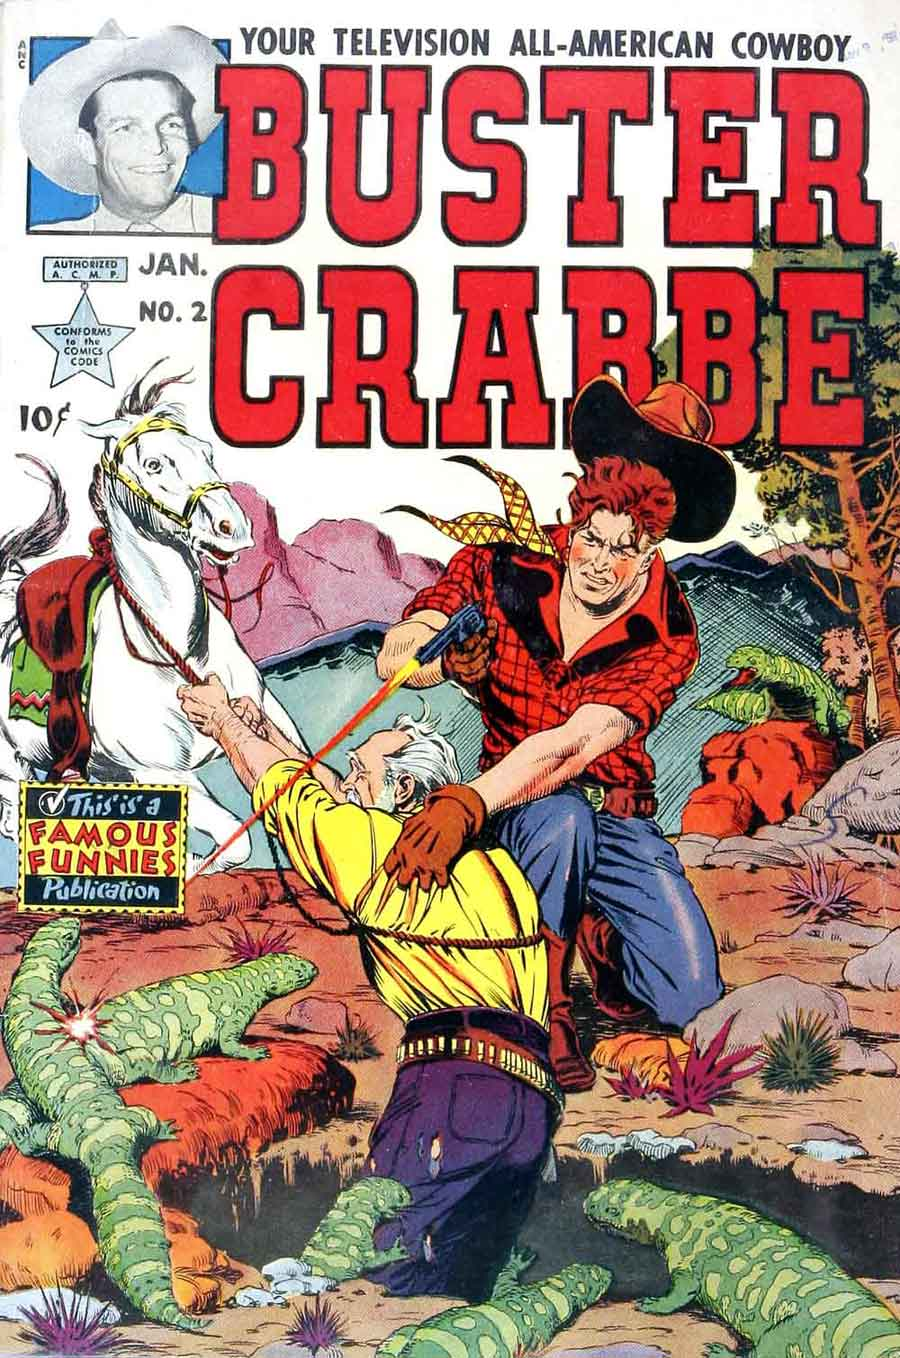 Buster Crabbe v1 #2 golden age comic book cover art by Al Williamson